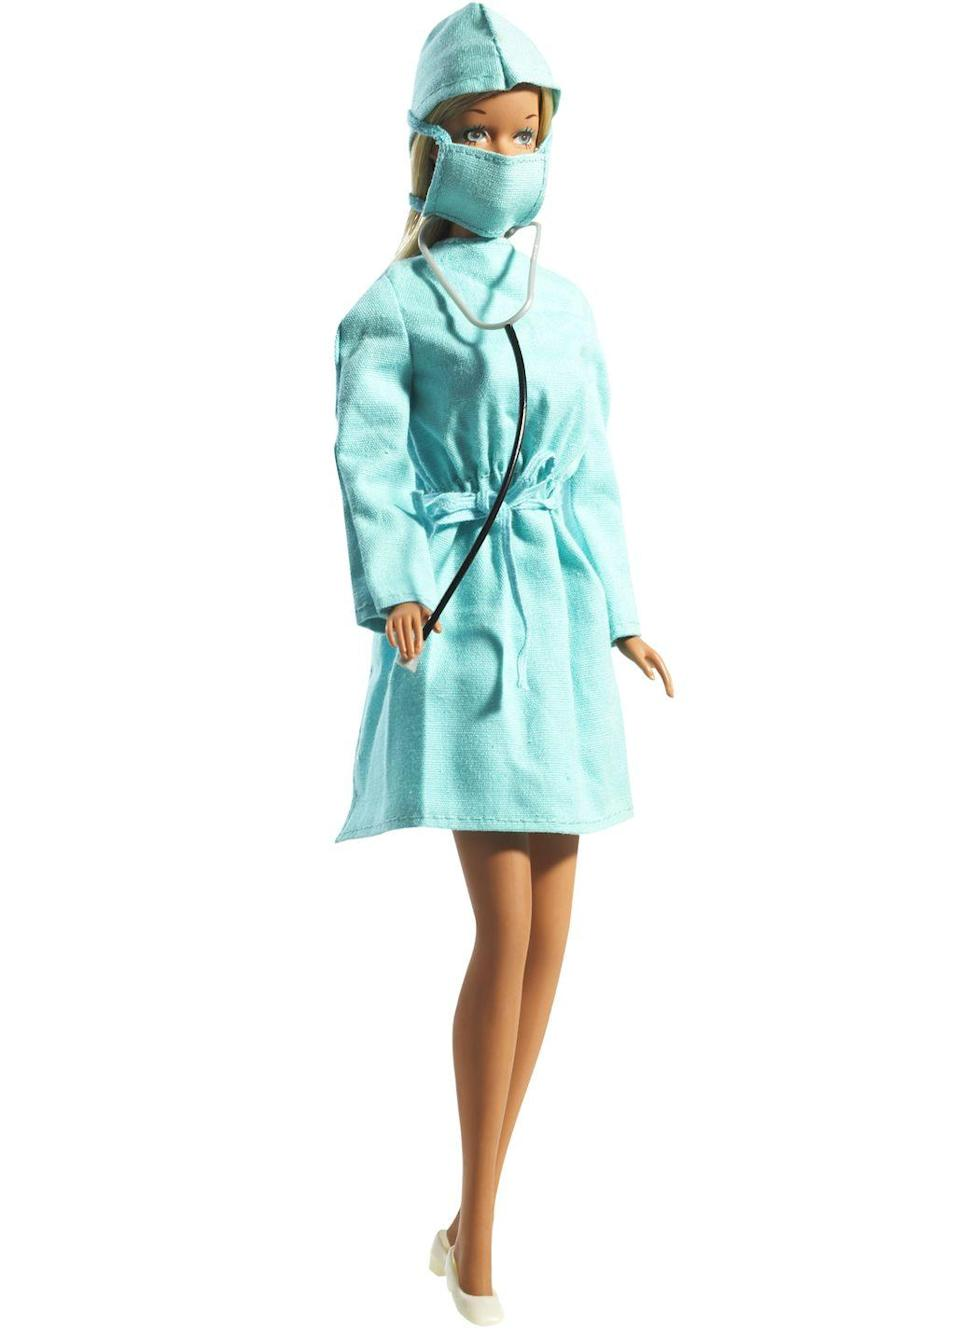 "<p>Surgeon Barbie does her rounds, adding doctor to her ever-increasing resume. </p><p><a href=""http://www.goodhousekeeping.com/life/entertainment/g2590/1970s-actors-then-vs-now/"" rel=""nofollow noopener"" target=""_blank"" data-ylk=""slk:'70s hunks then and now »"" class=""link rapid-noclick-resp""><em>'70s hunks then and now »</em></a></p>"